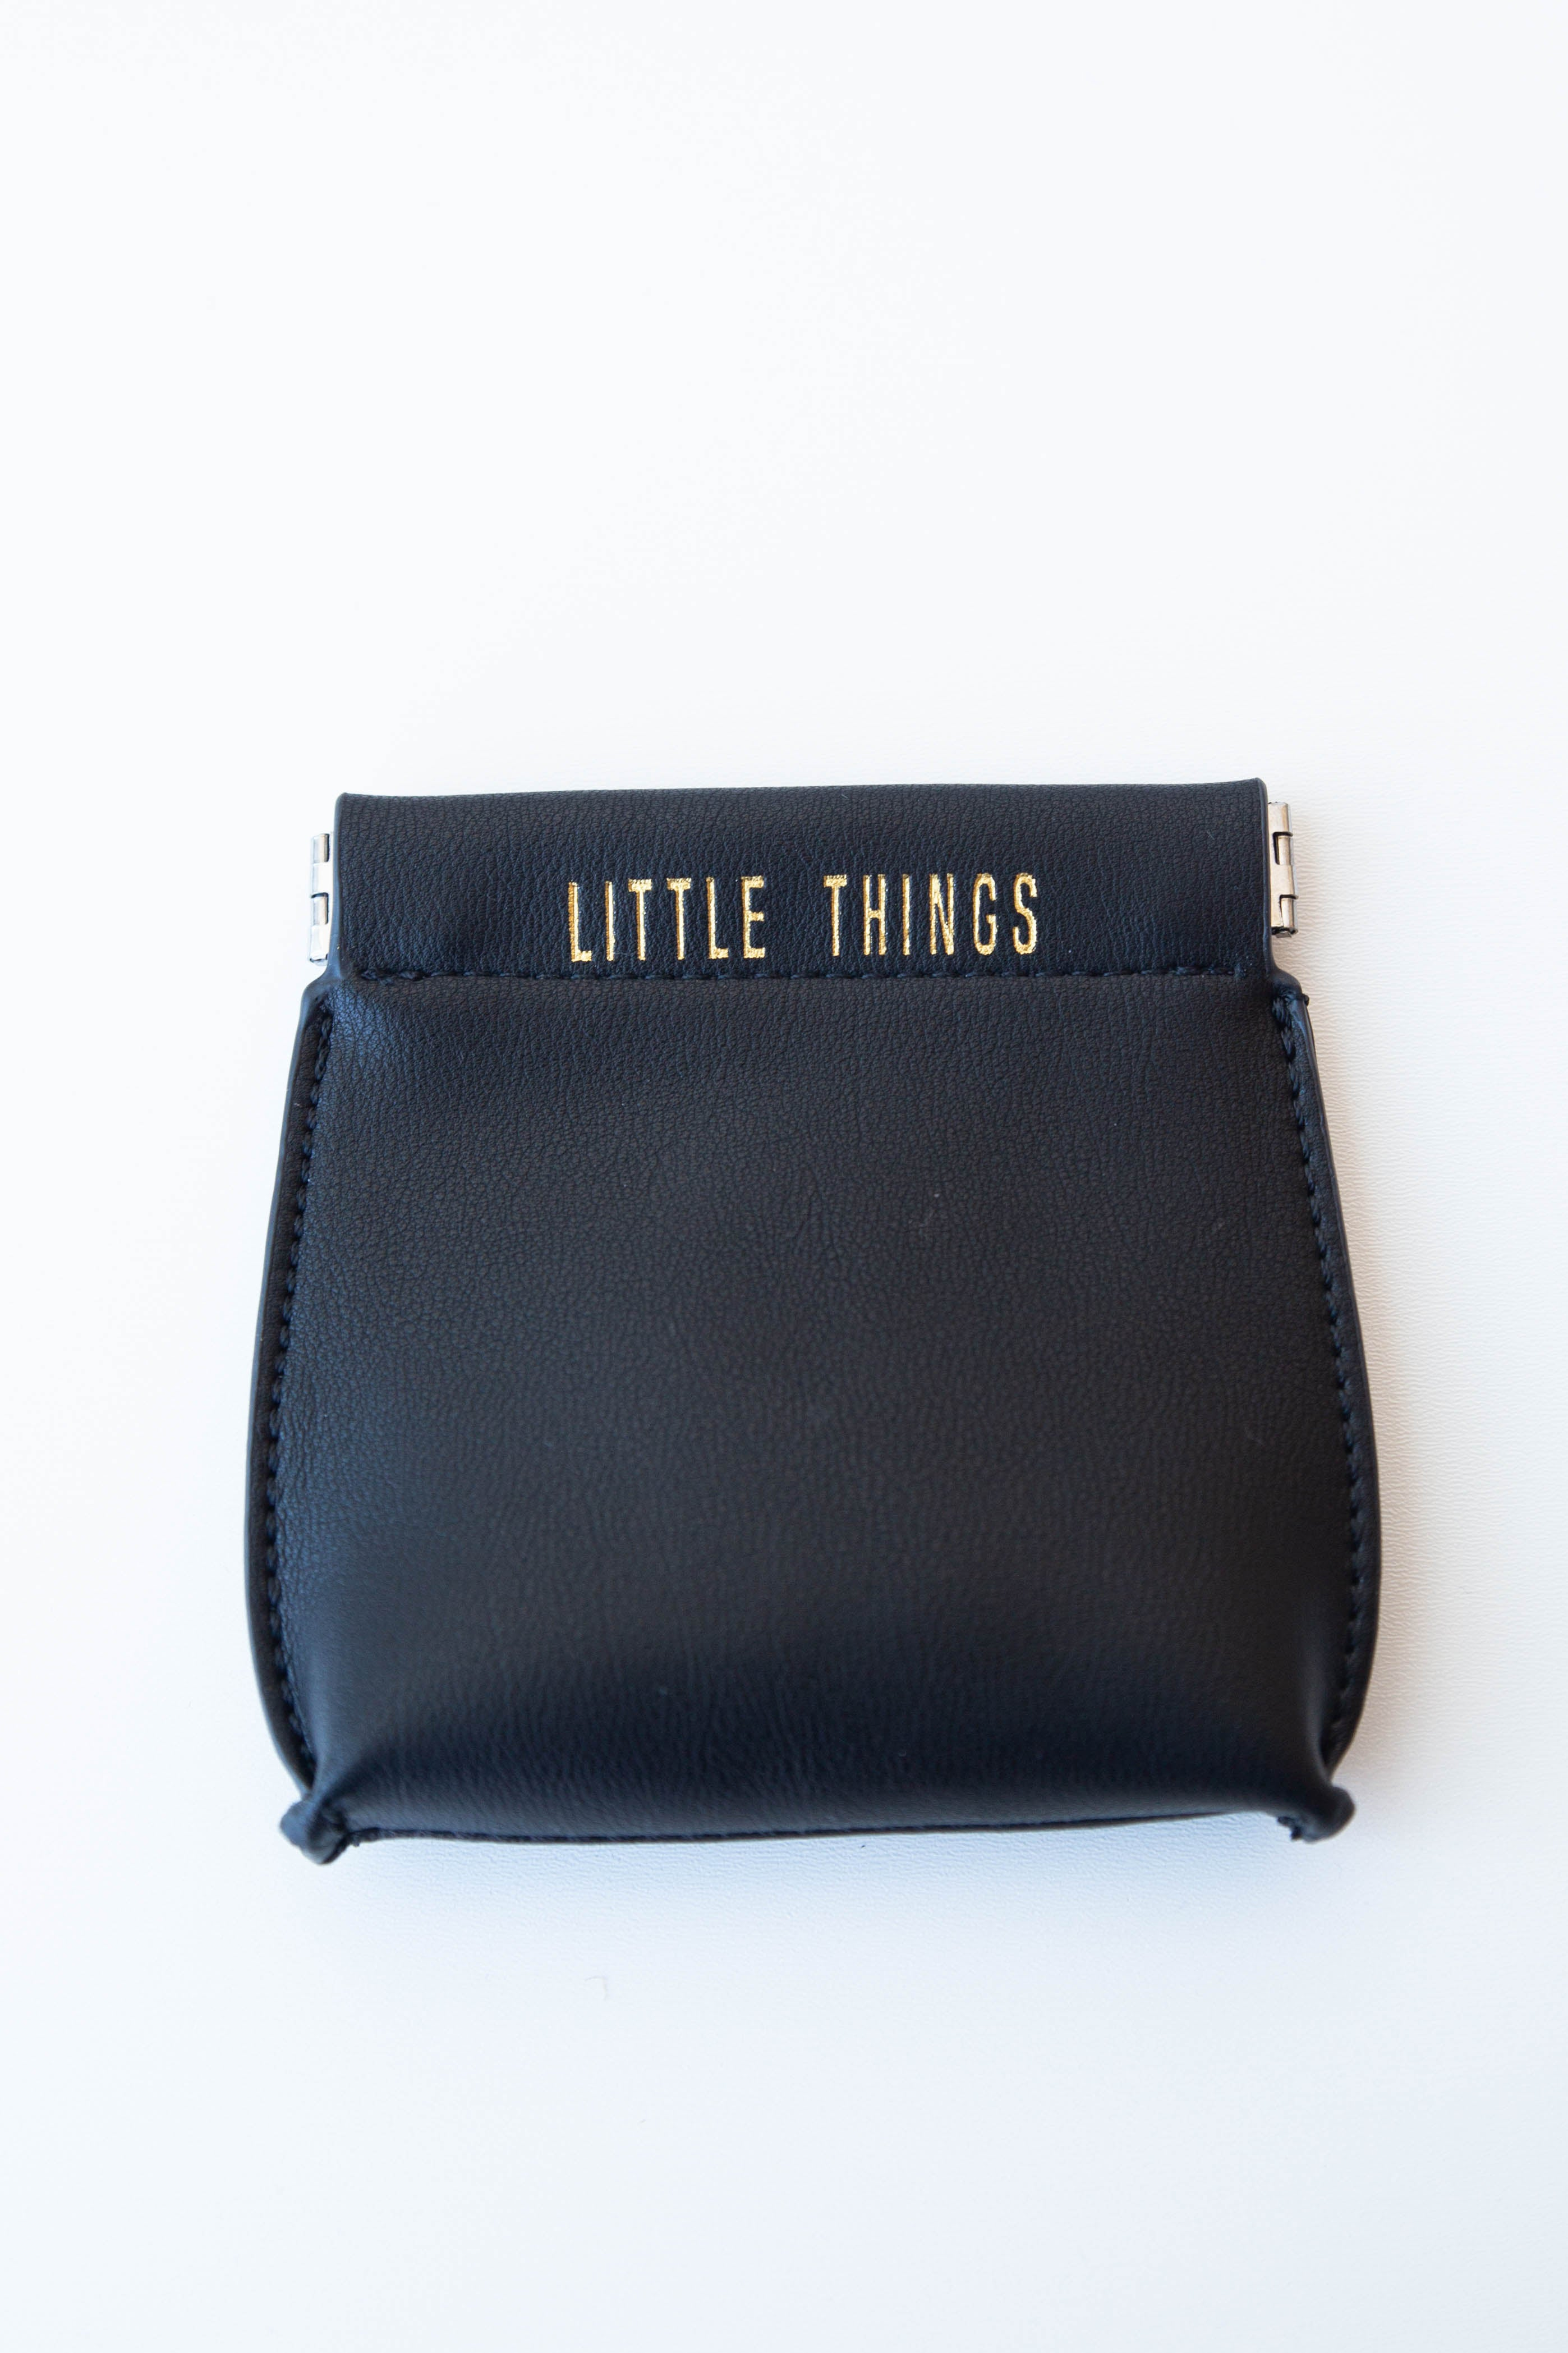 mode, little things pouch